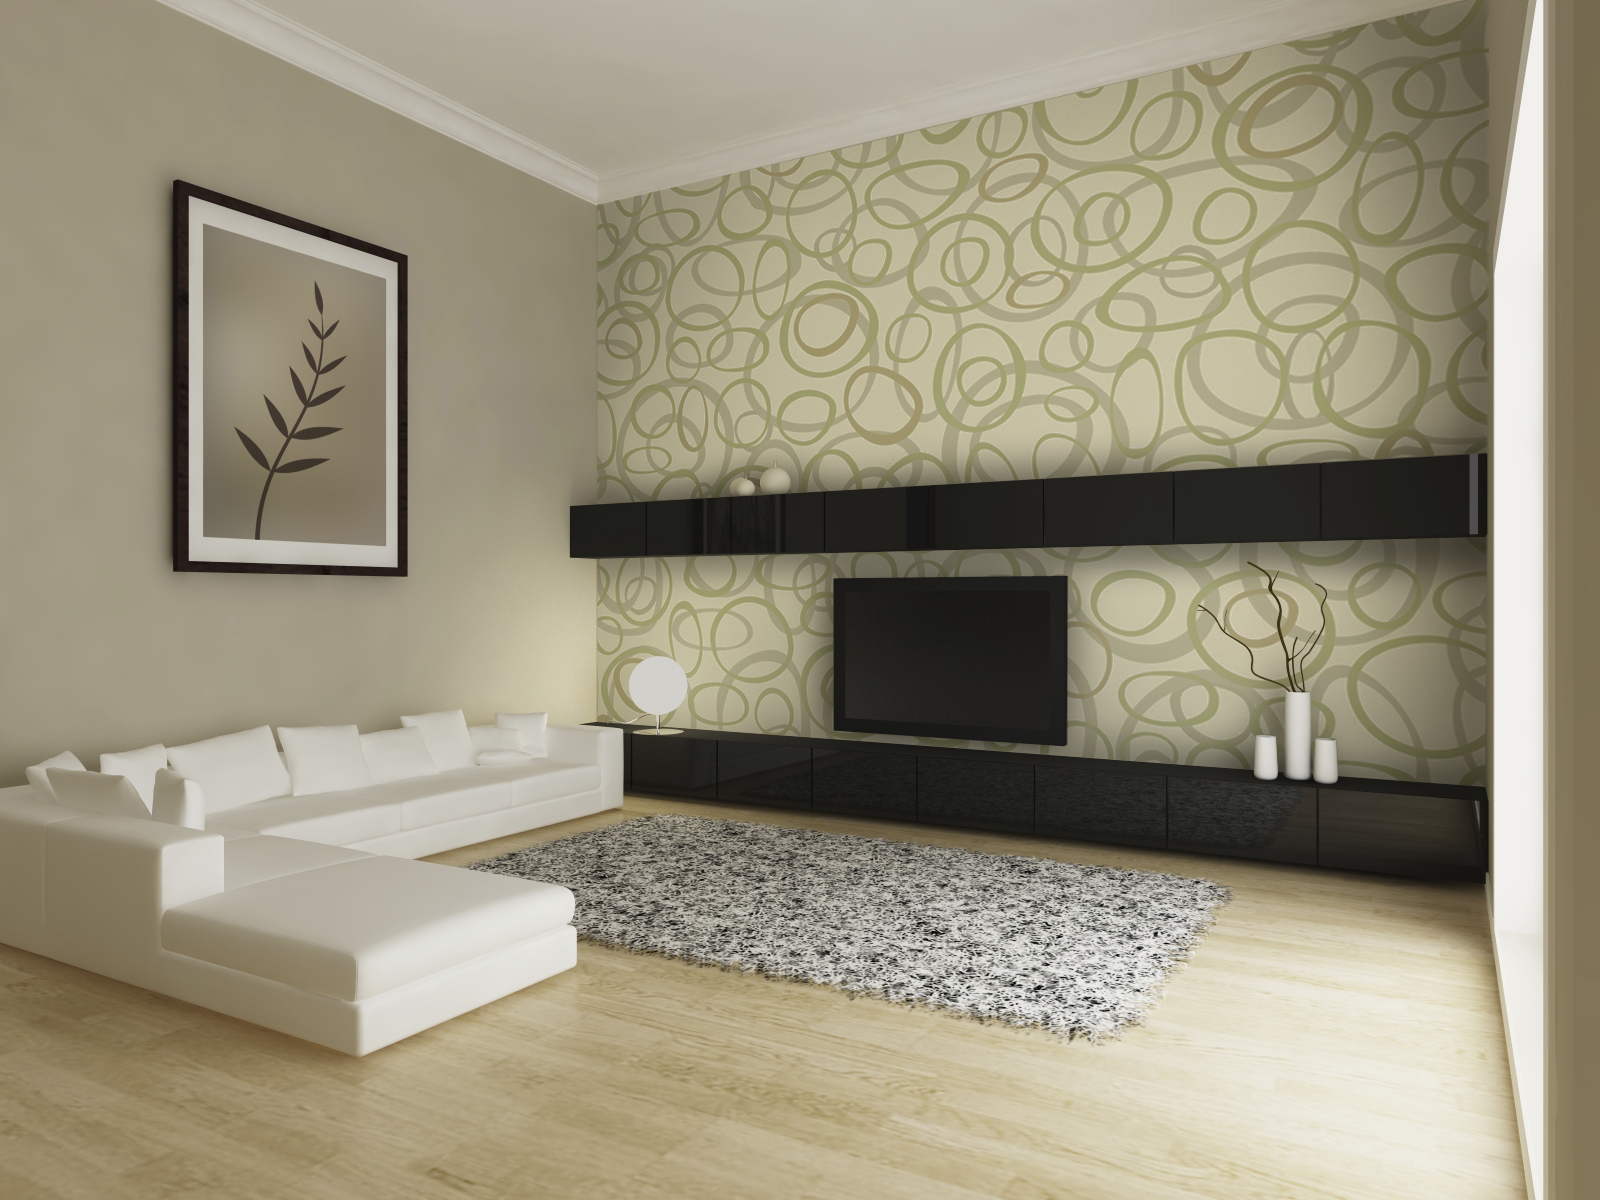 Home Interior Wallpaper Designs